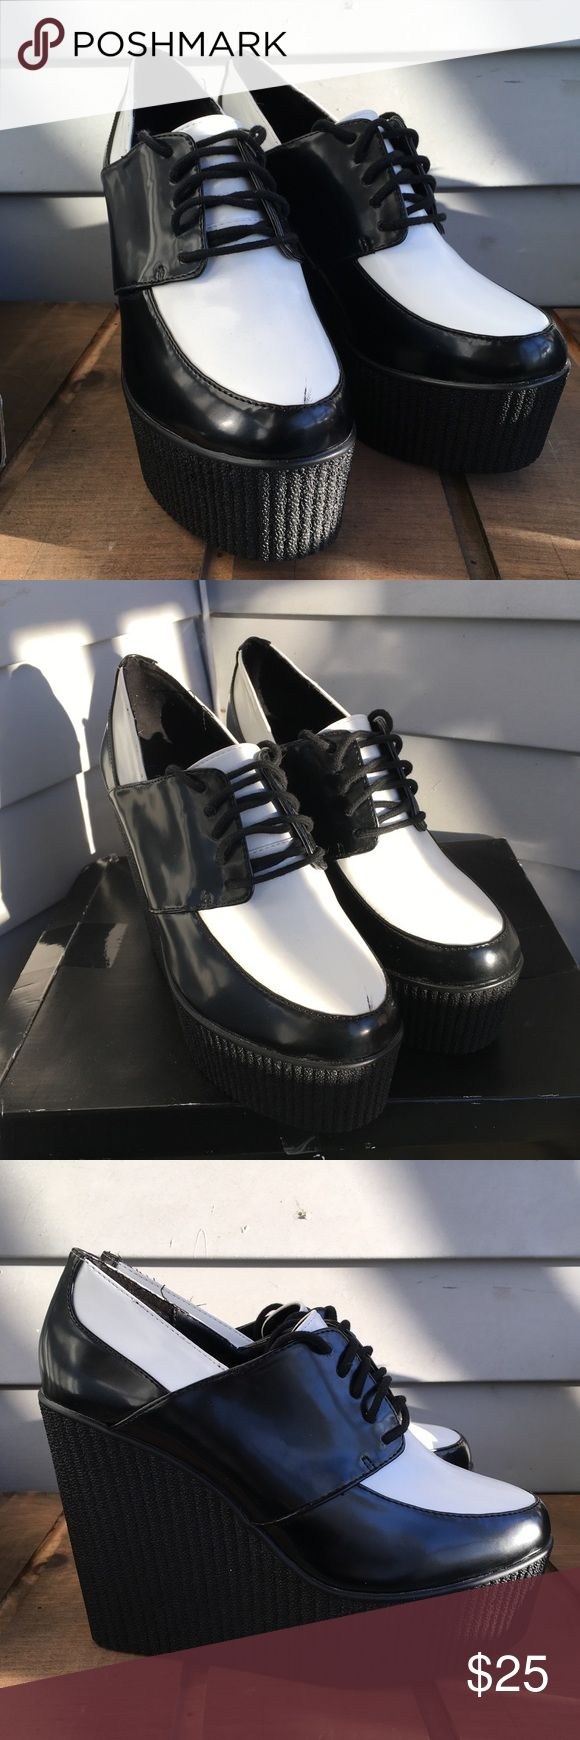 Forever 21 Faux Leather Platform Creepers Are creepers still in style? I'm always a few seasons behind...BEHOLD these gorgeous Platform creepers that have been sitting in their original box since 2014! A spontaneous buy, I have never worn them, just stared at them longingly. Please, someone get these so I can see how you style them! Forever 21 Shoes Platforms